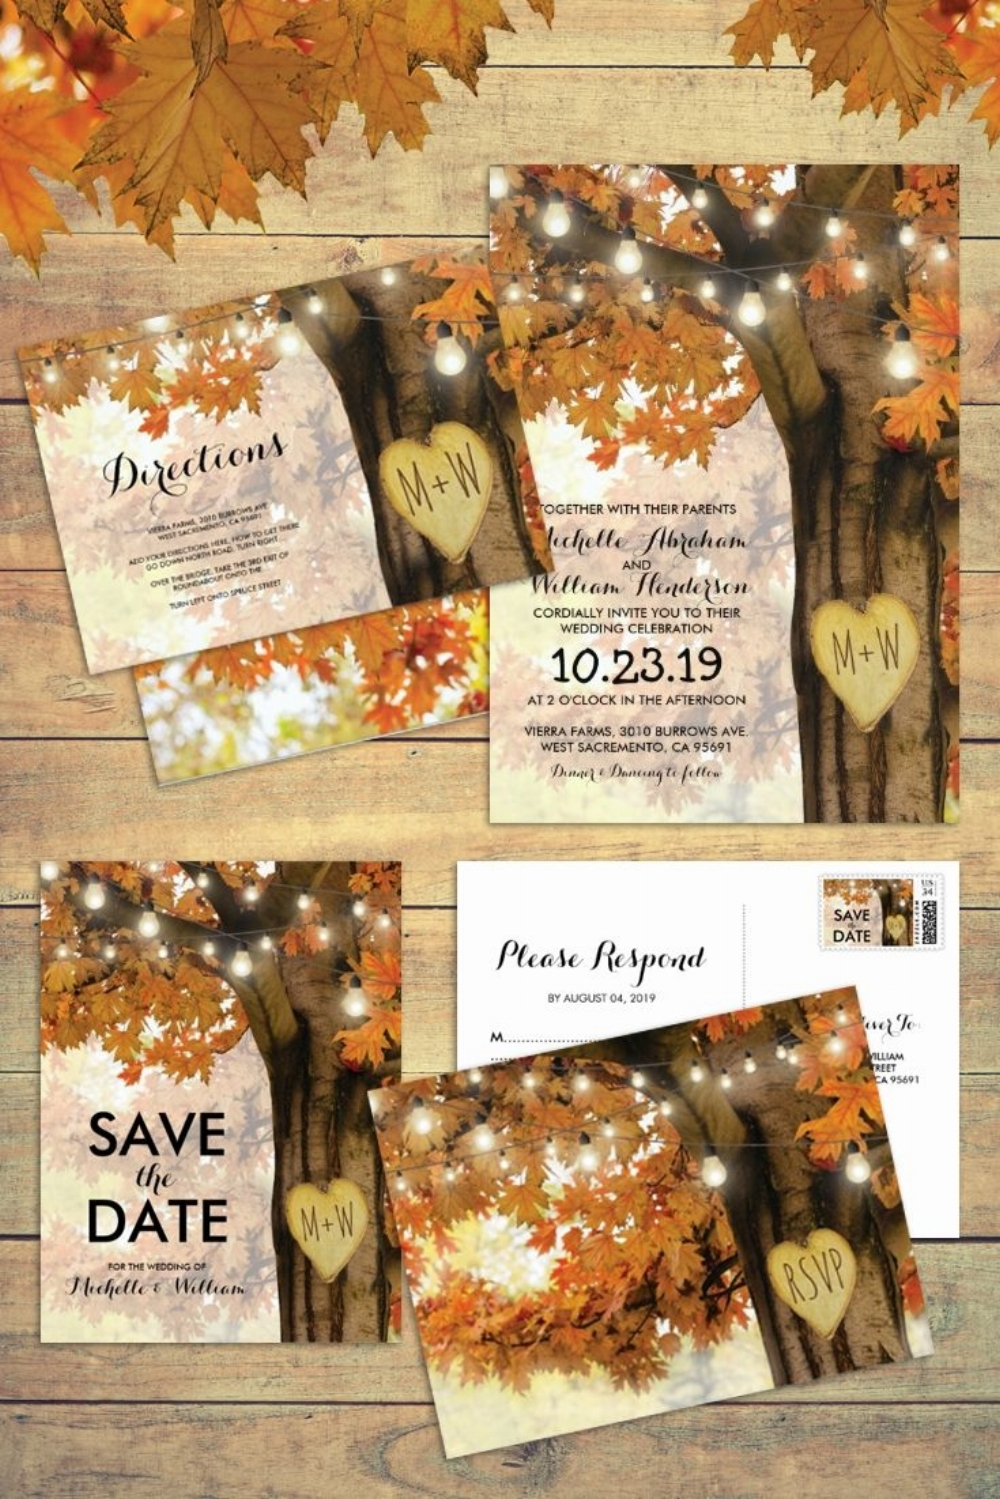 Fall Tree with Glowing Lights Invitation.jpg